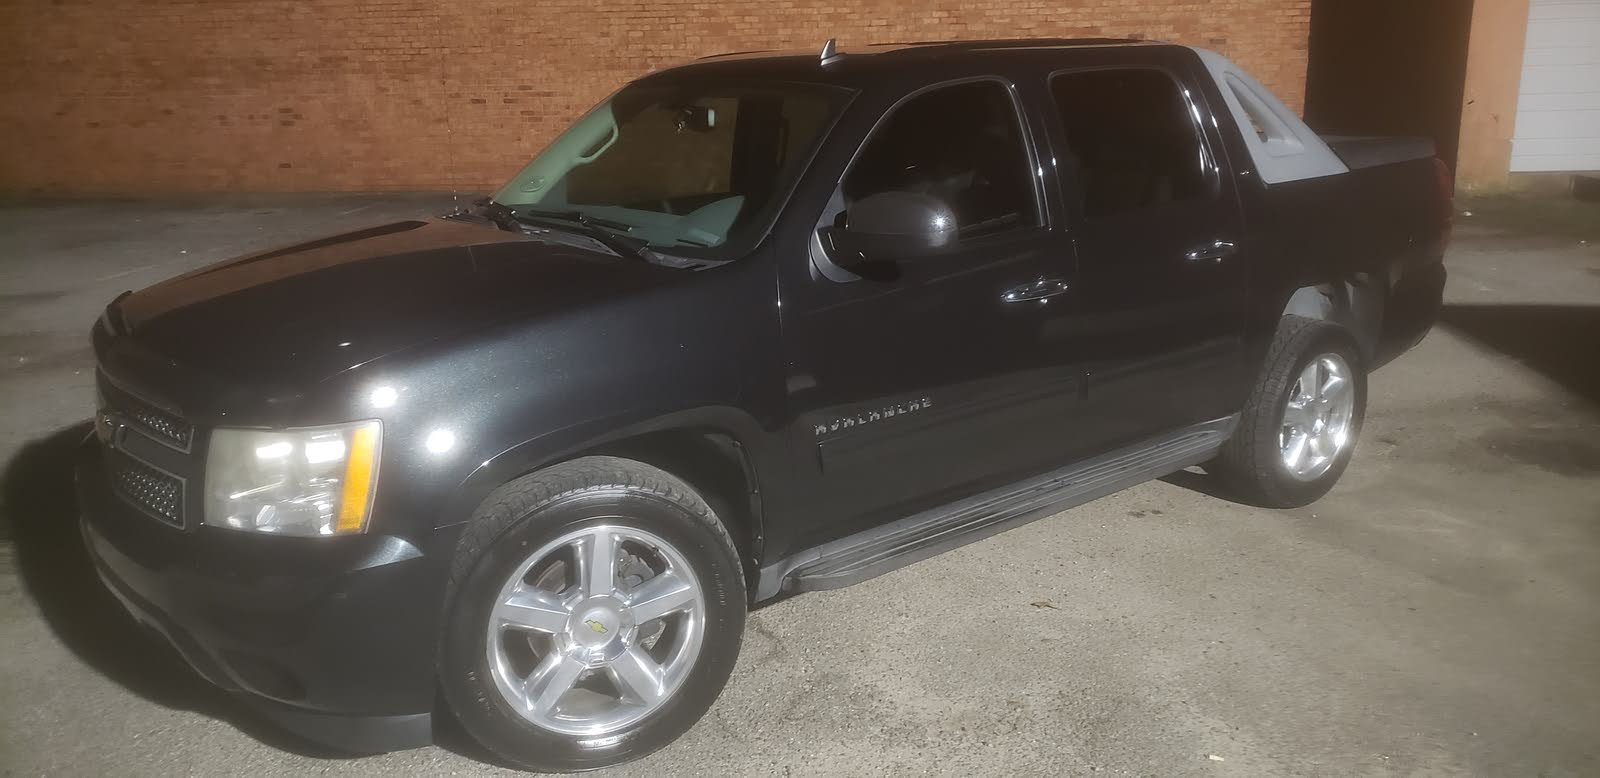 2010 Chevrolet Avalanche - Overview - CarGurus